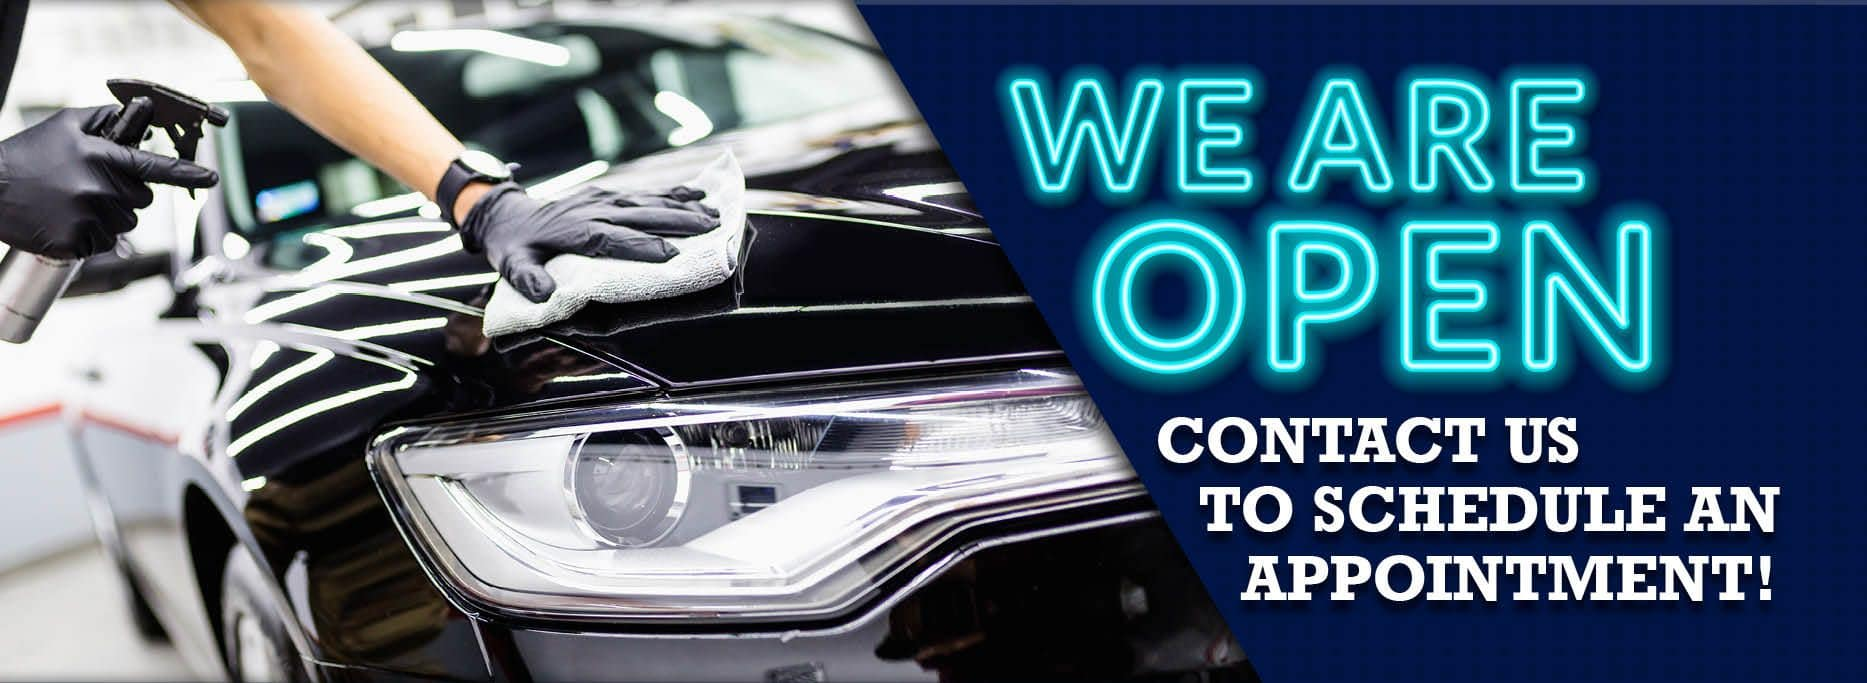 20-Car-We Are Open-blue-banner